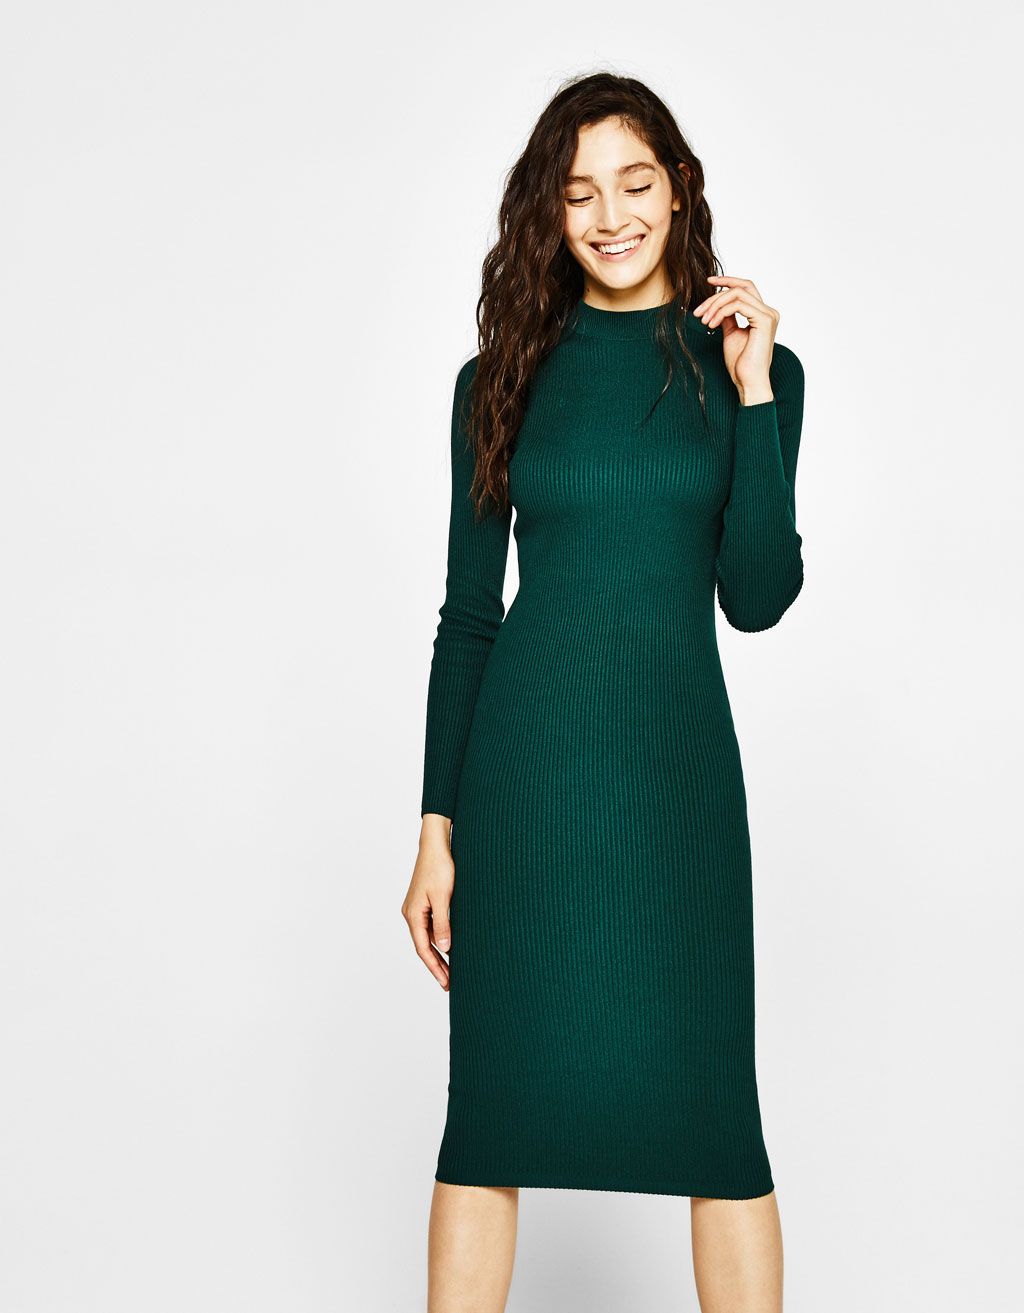 Ribbed dress with button neck